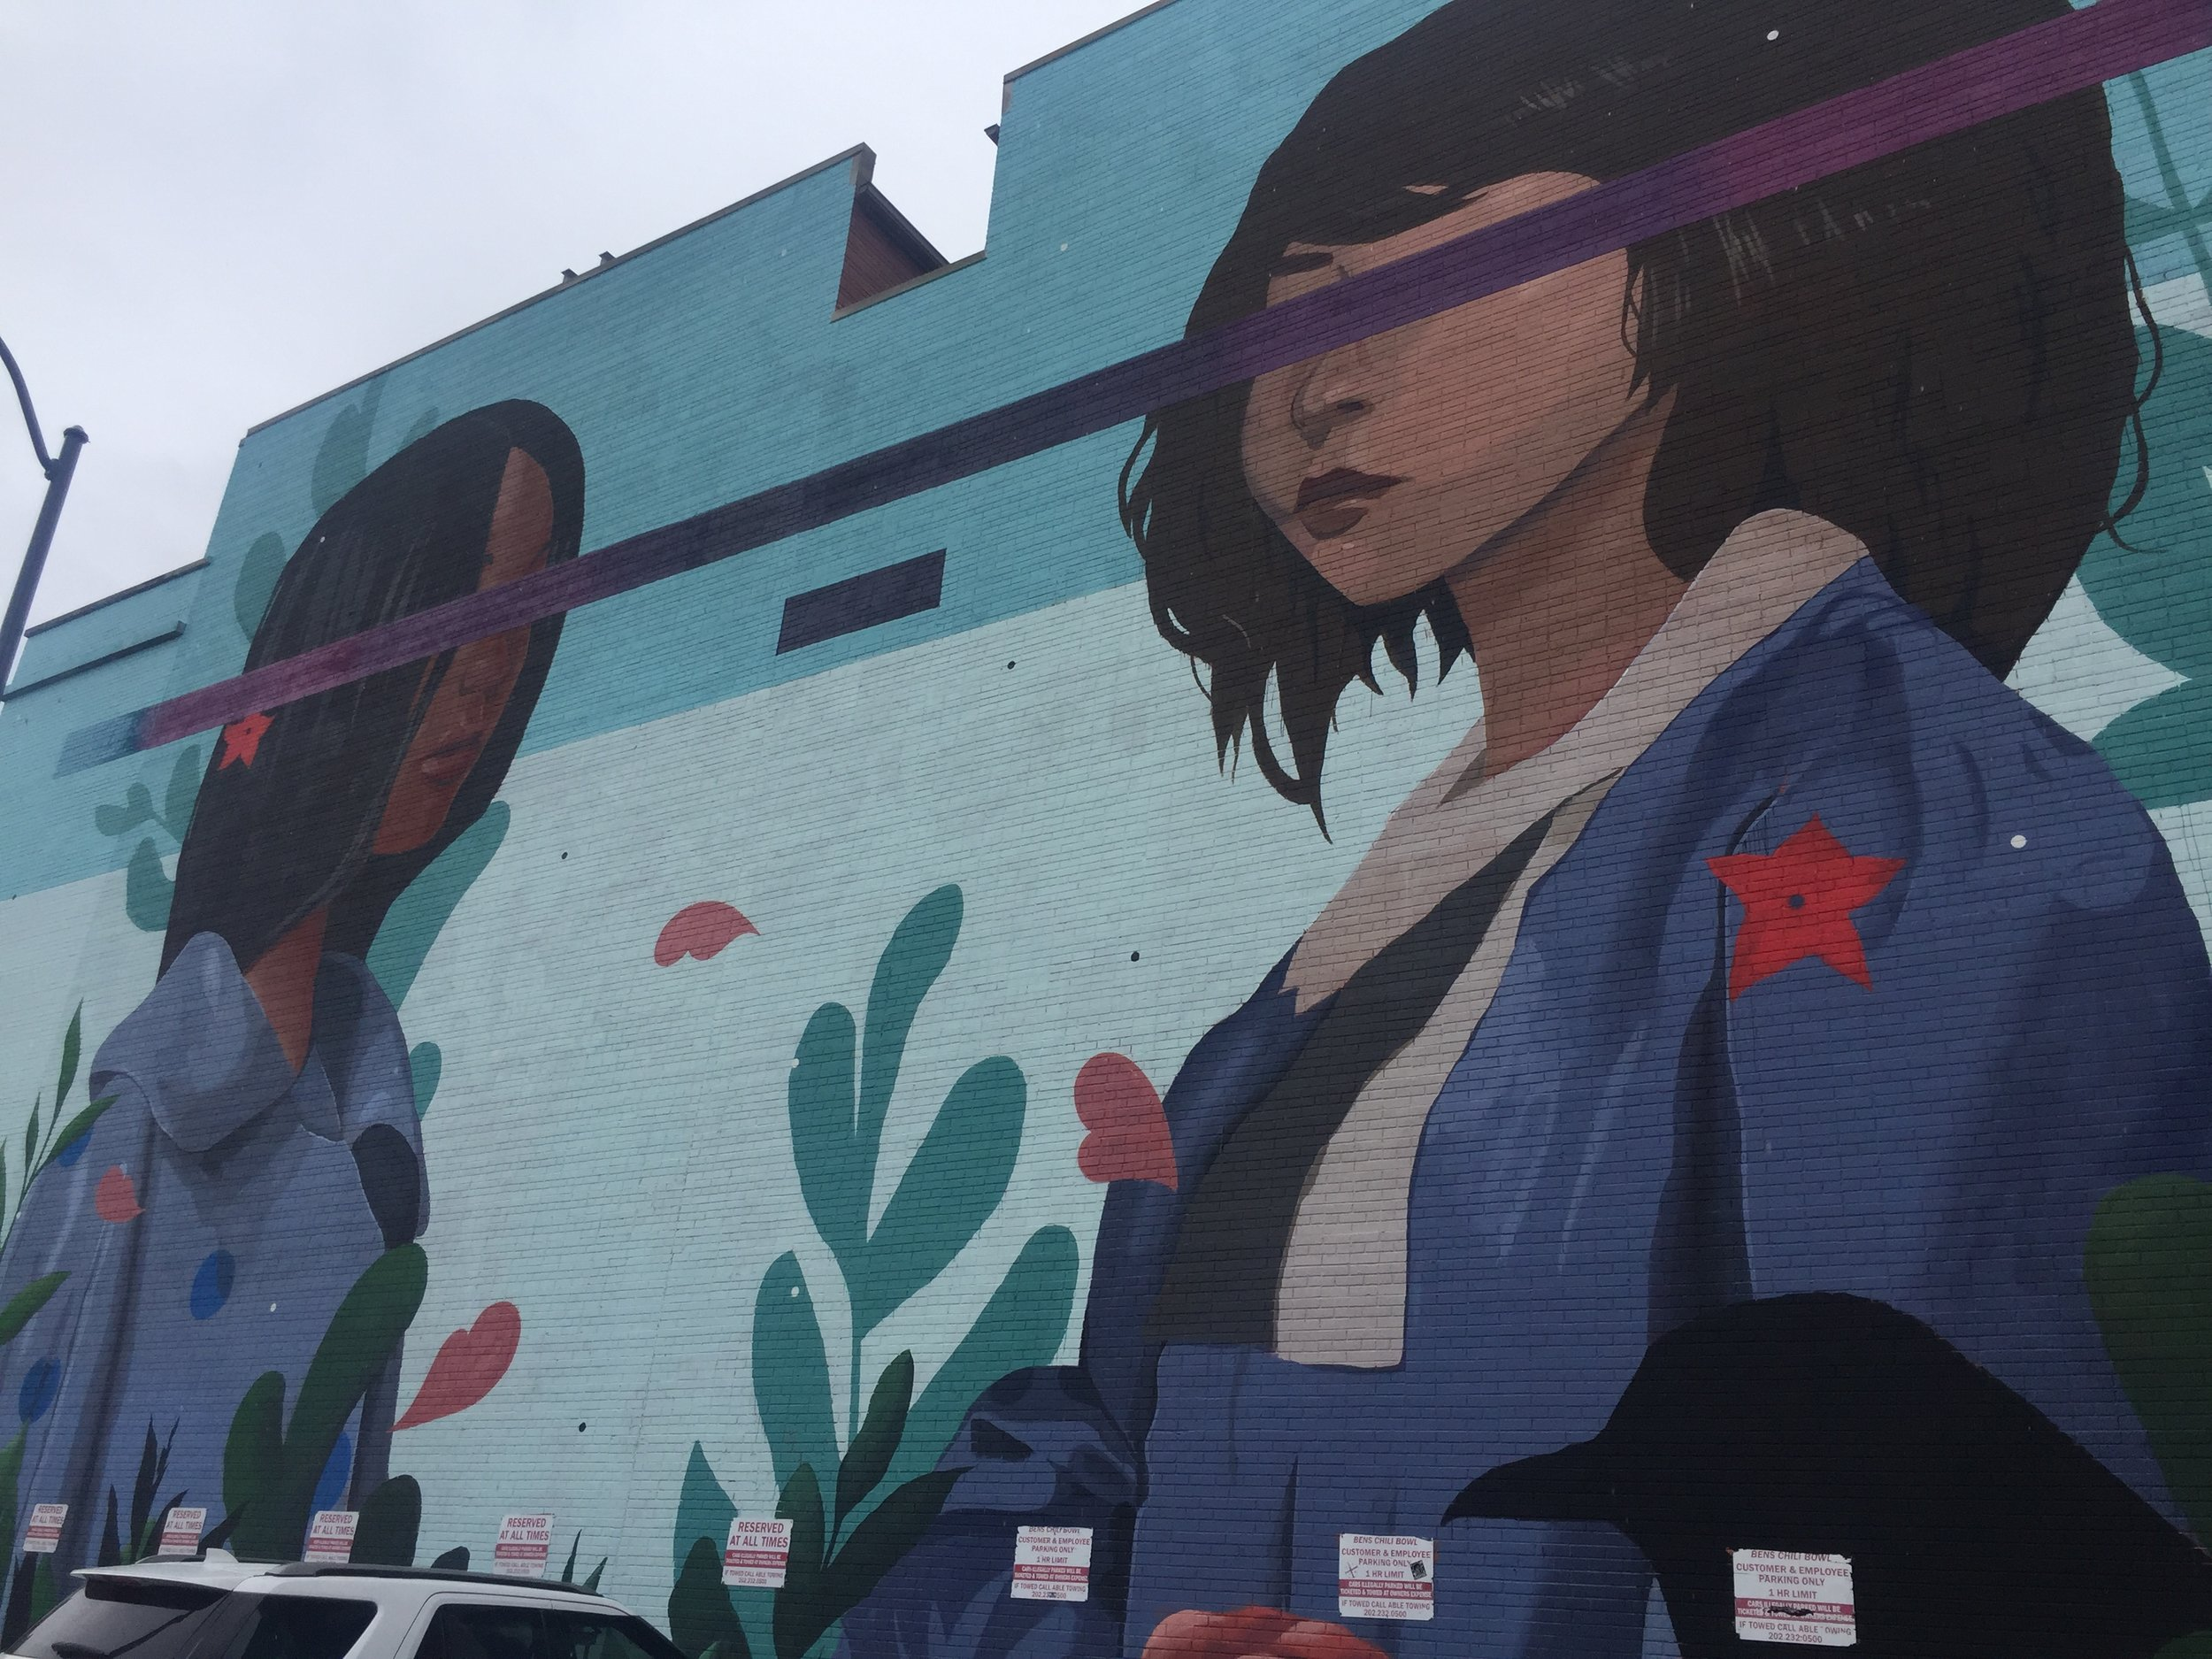 Kindred Mural in Washington, D.C. | Best Instagram Murals